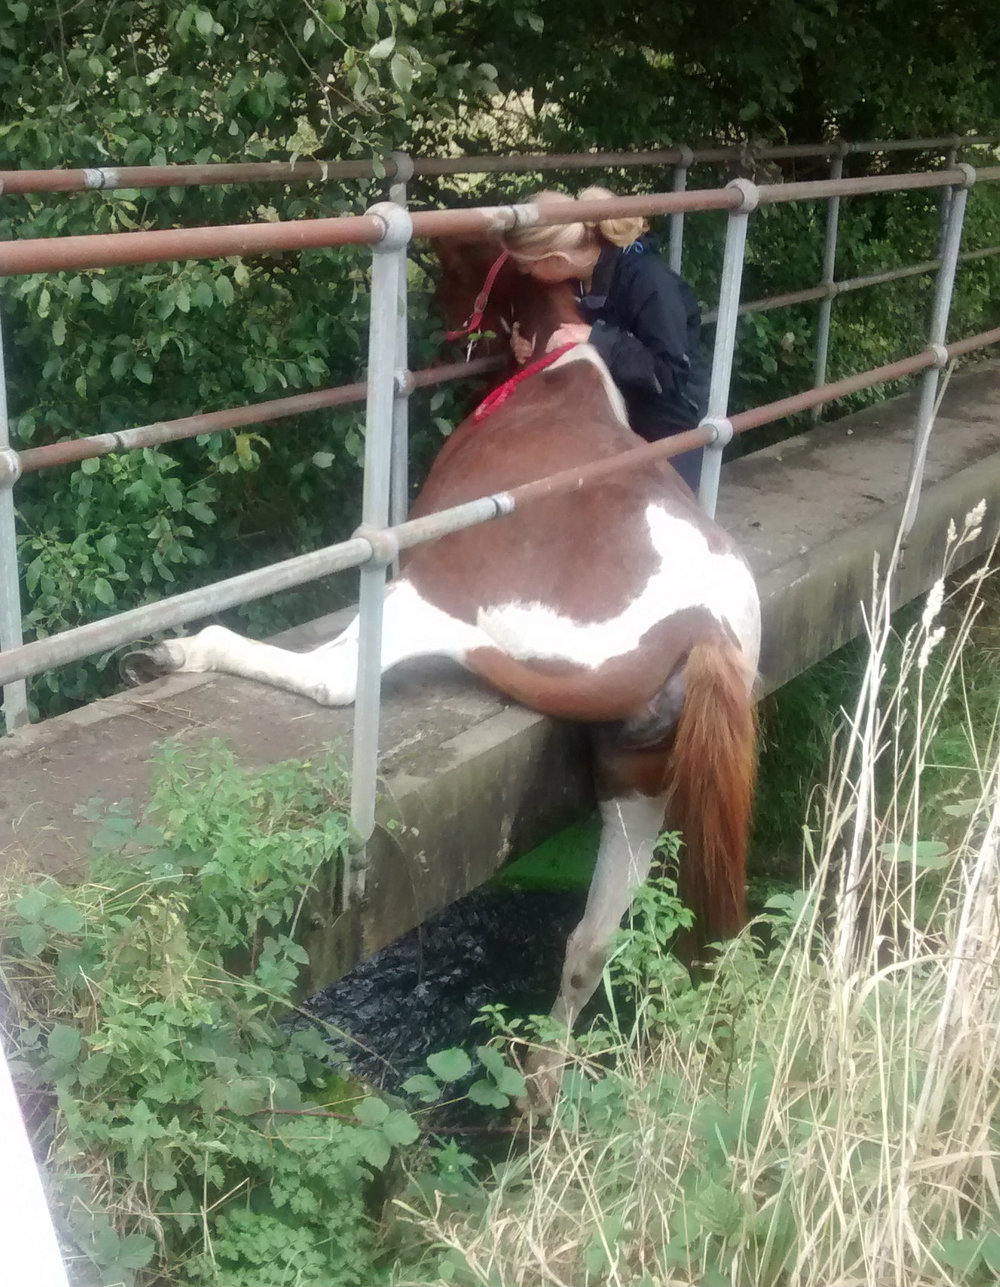 It's thought that the mare was walking across the footbridge when she slipped (Pic: RSPCA)